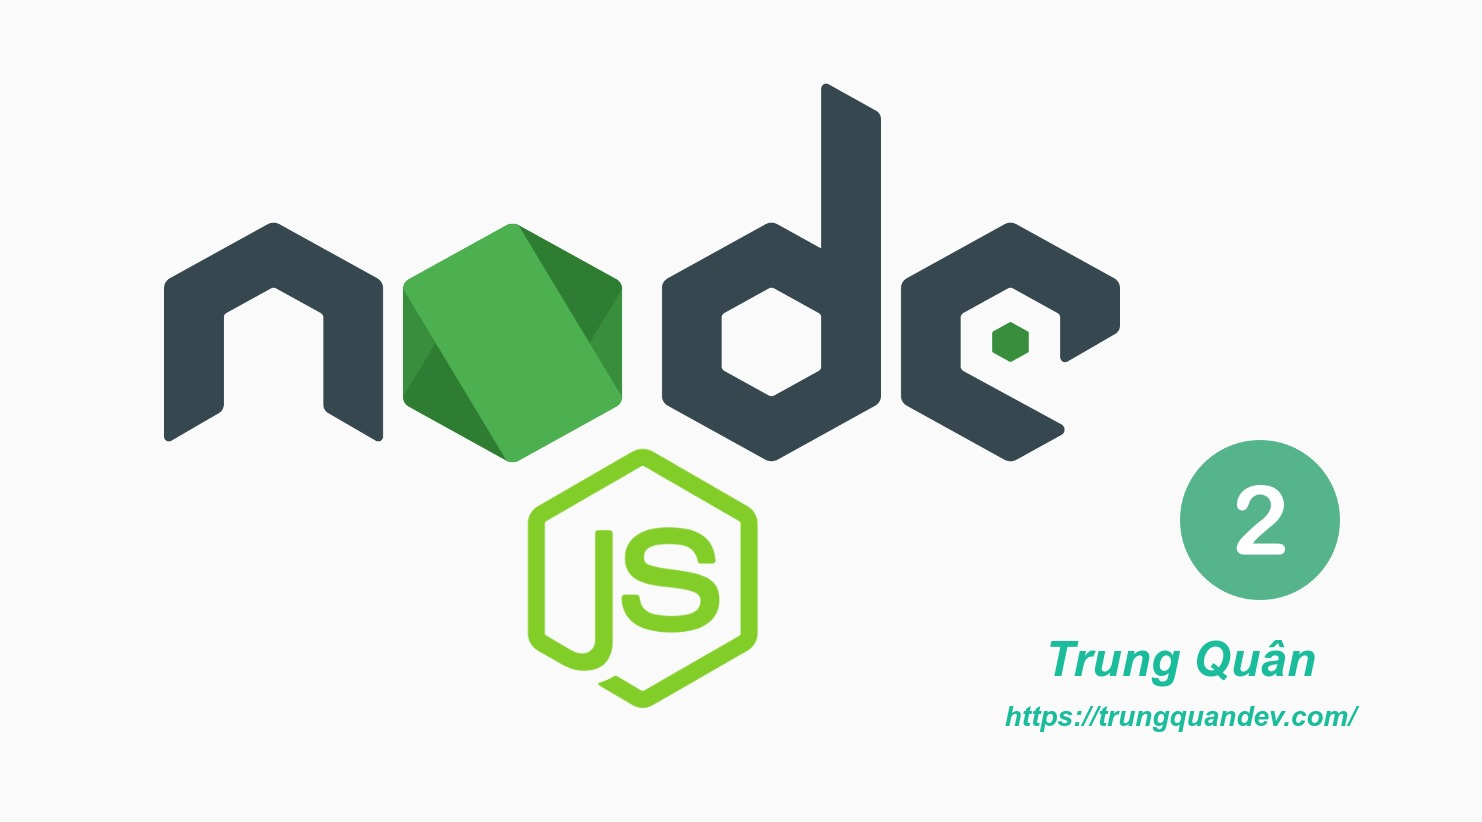 nodejs-tutorial-01-hello-world-trungquandev-image-bg